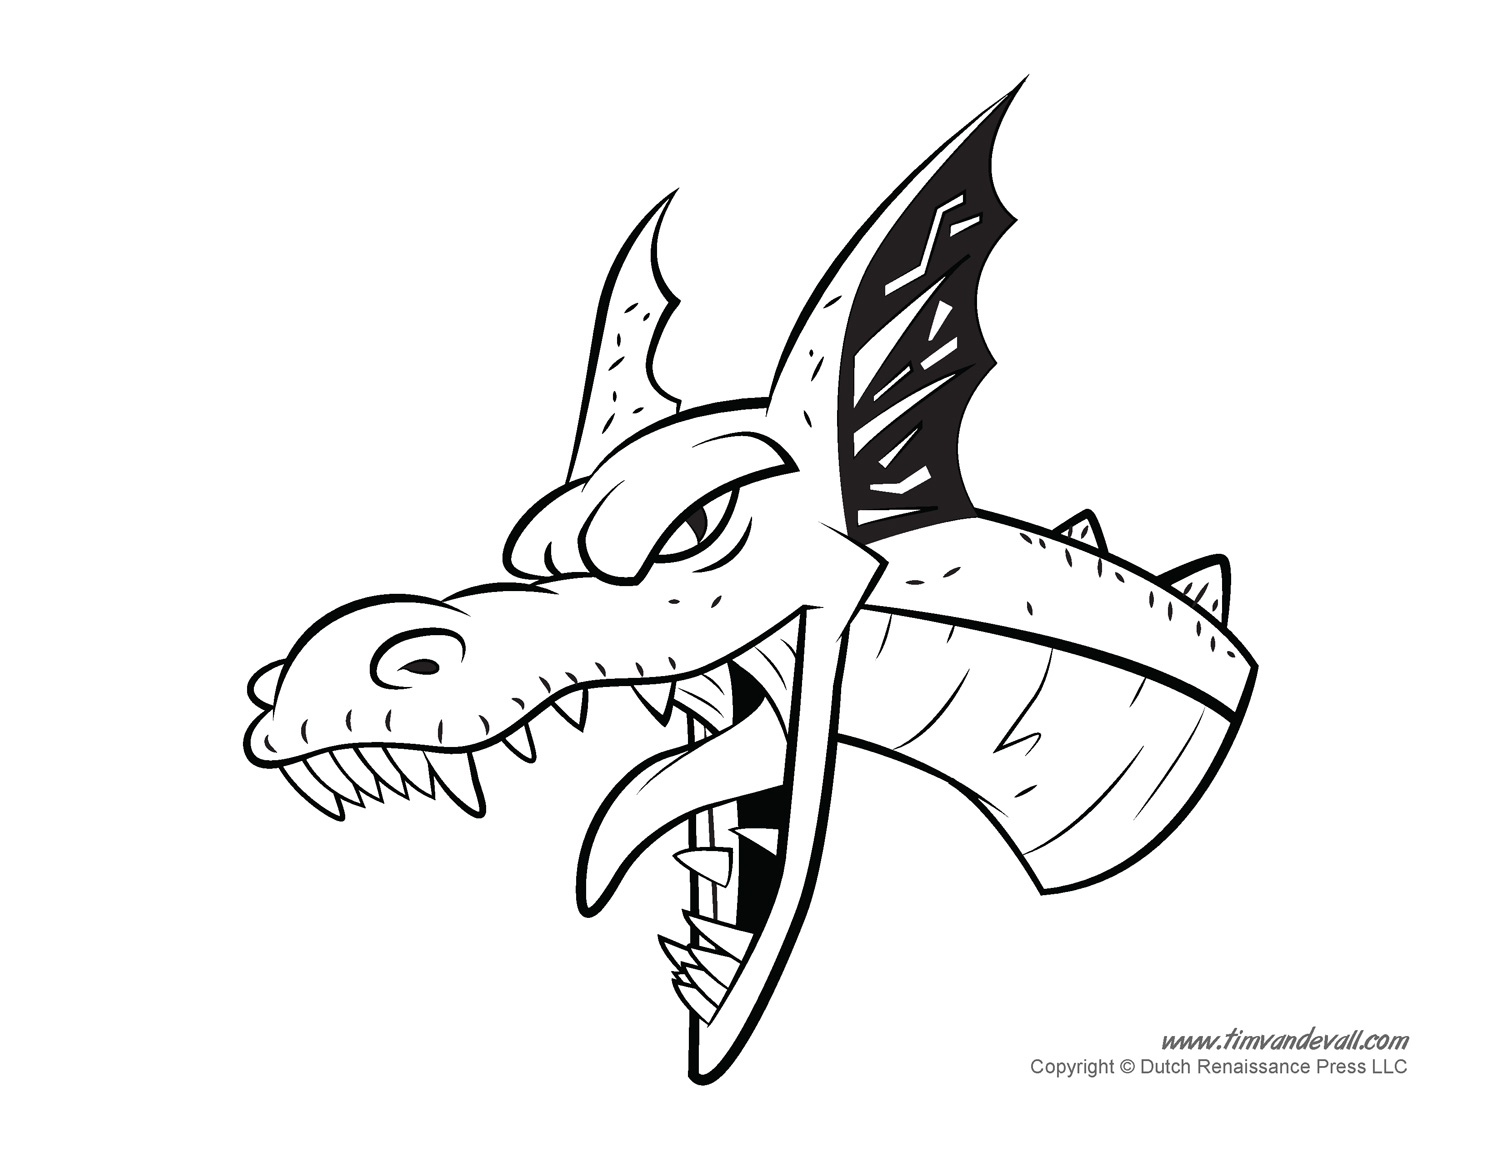 Colouring Sheets Chinese Dragon Coloring Page Tim Van De Vall